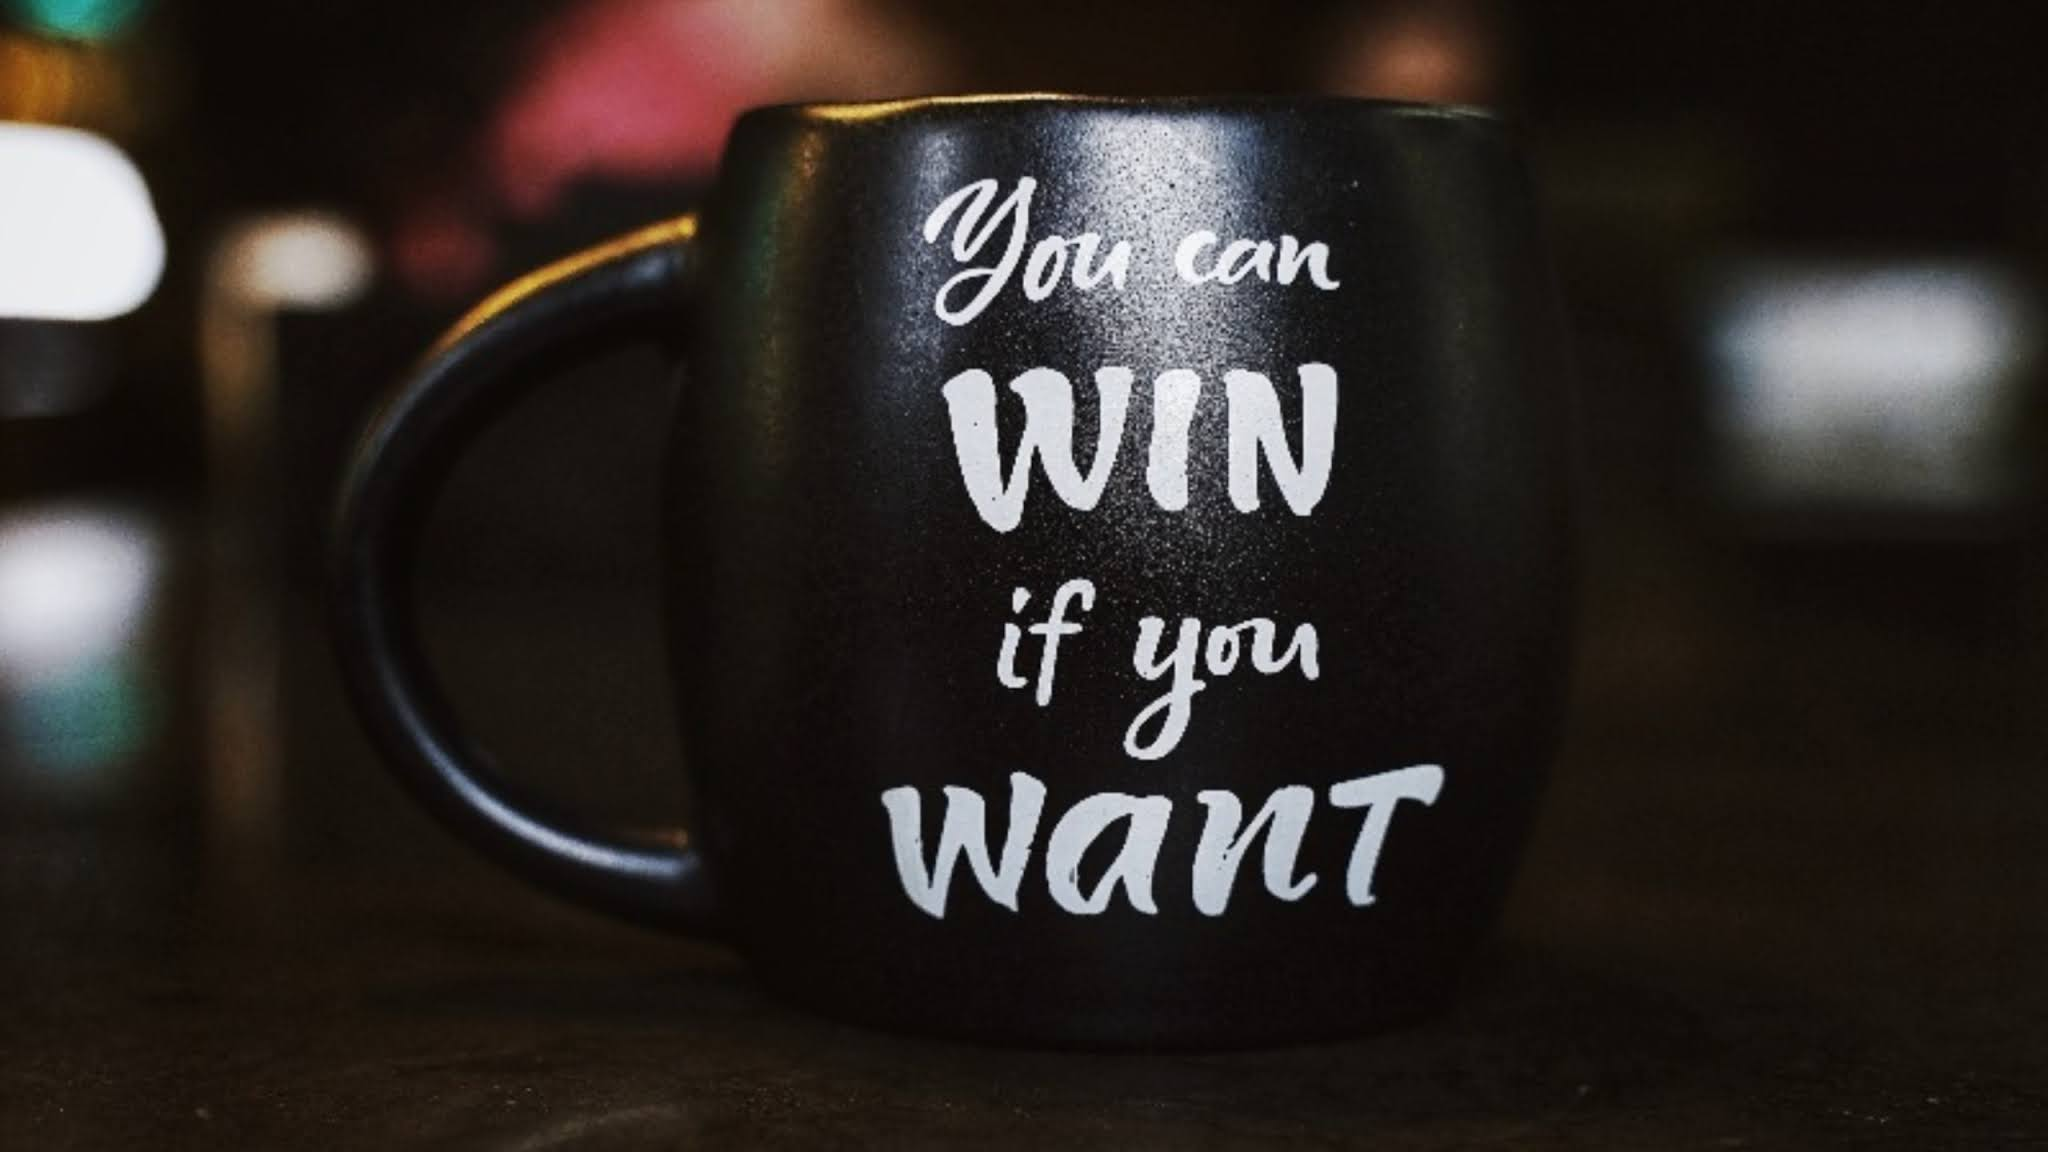 Motivational & Inspirational Wednesday Morning Quotes & Images For Work, Motivation & Inspiration